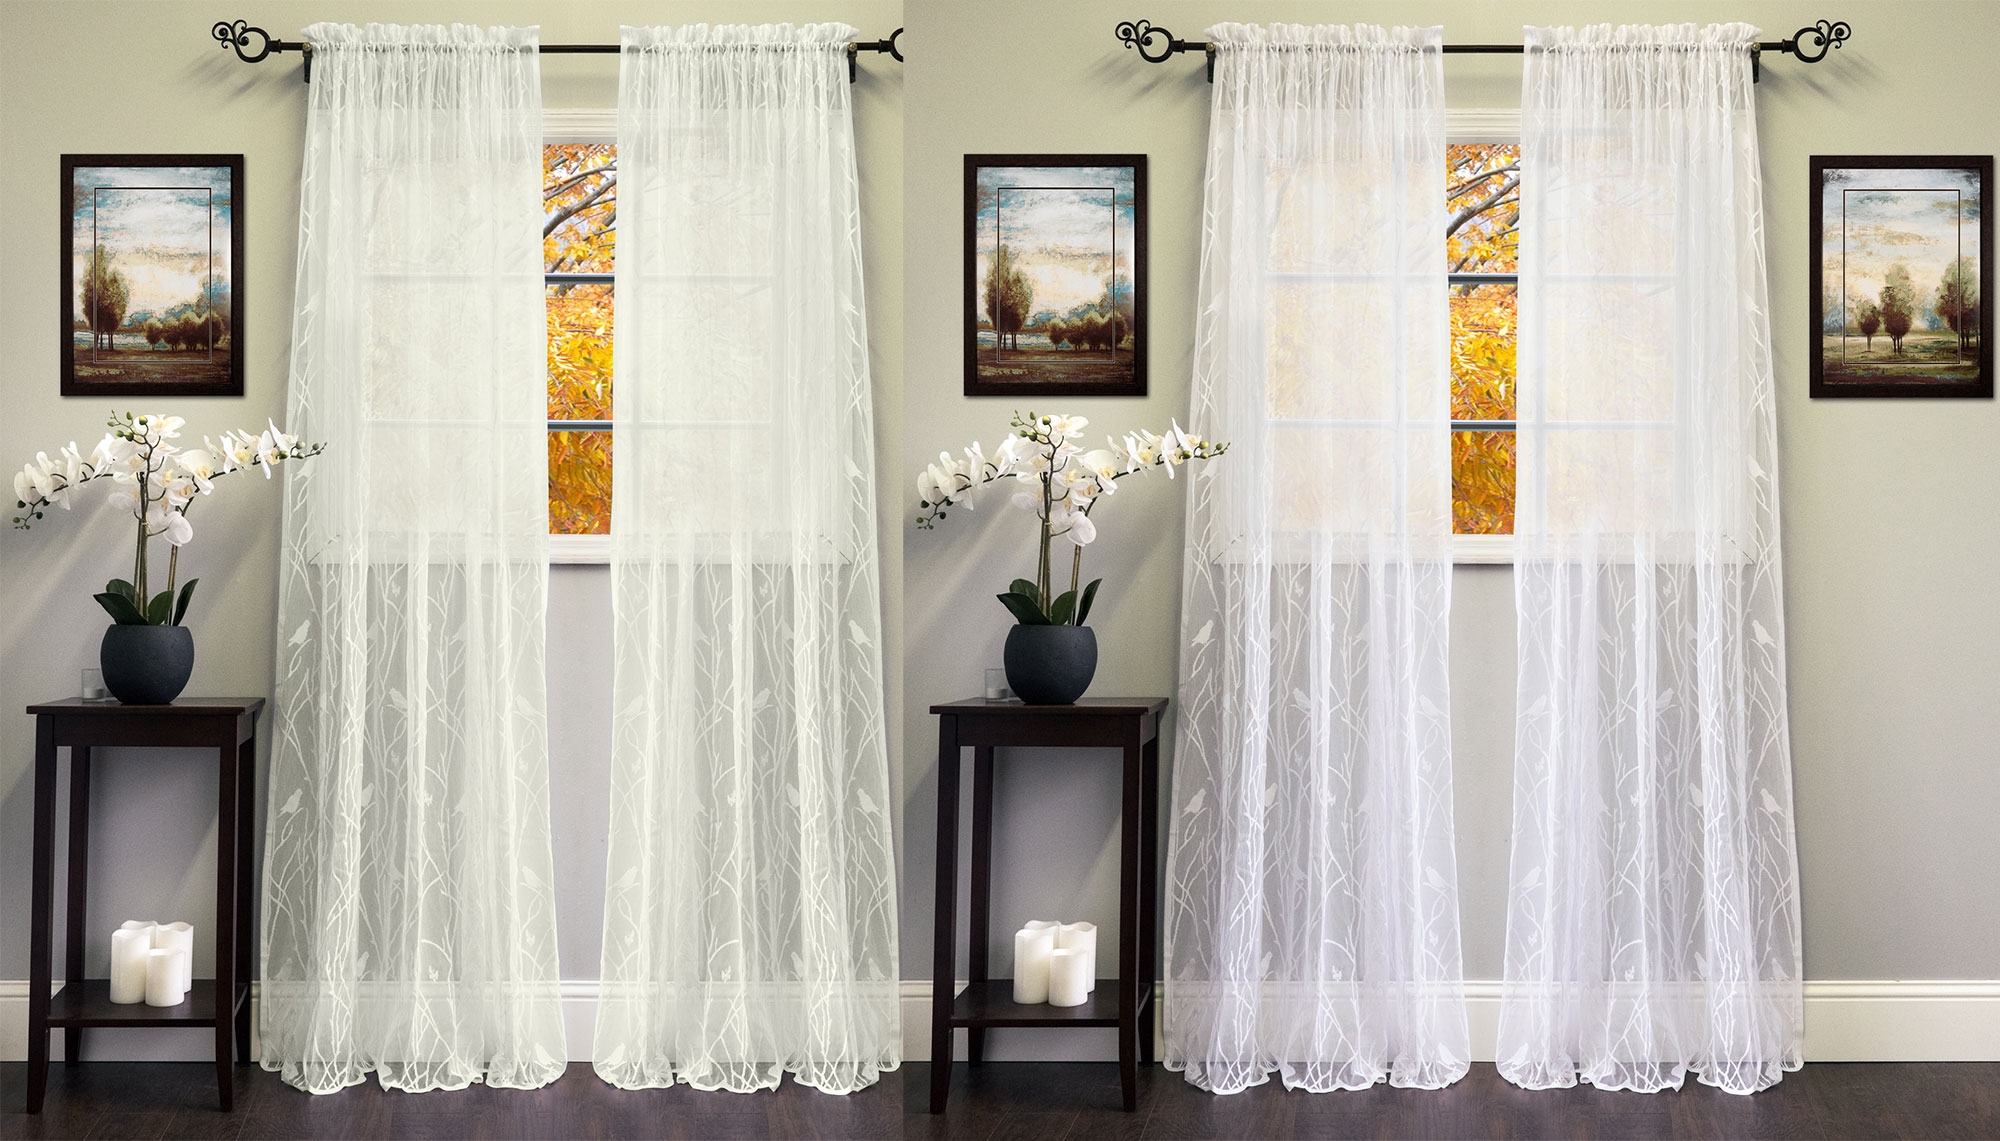 """Details About Knit Lace Polyester Songbird Motif 56""""x 84"""" Window Curtain Panel Throughout Marine Life Motif Knitted Lace Window Curtain Pieces (View 6 of 20)"""